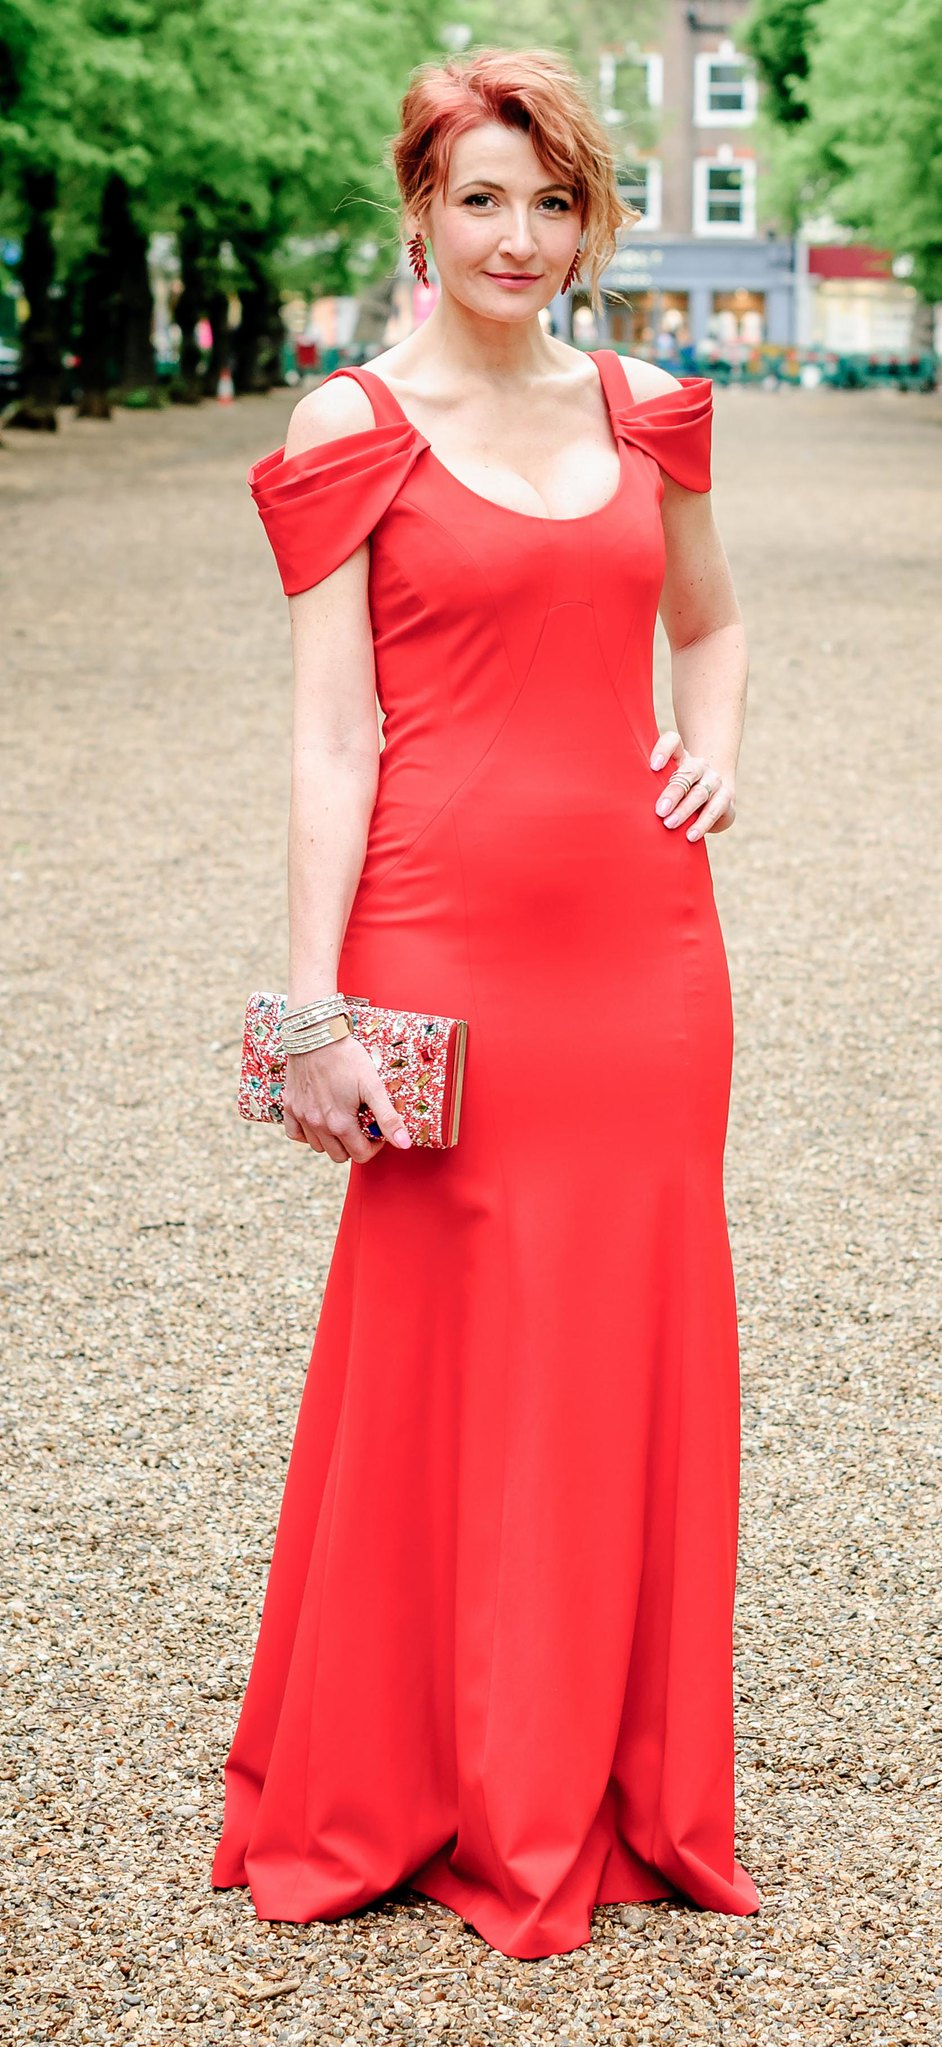 Awards ceremony outfit - Long red fitted gown with shoulder detail \ crystal embellished box clutch \ red crystal earrings | Not Dressed As Lamb, over 40 style